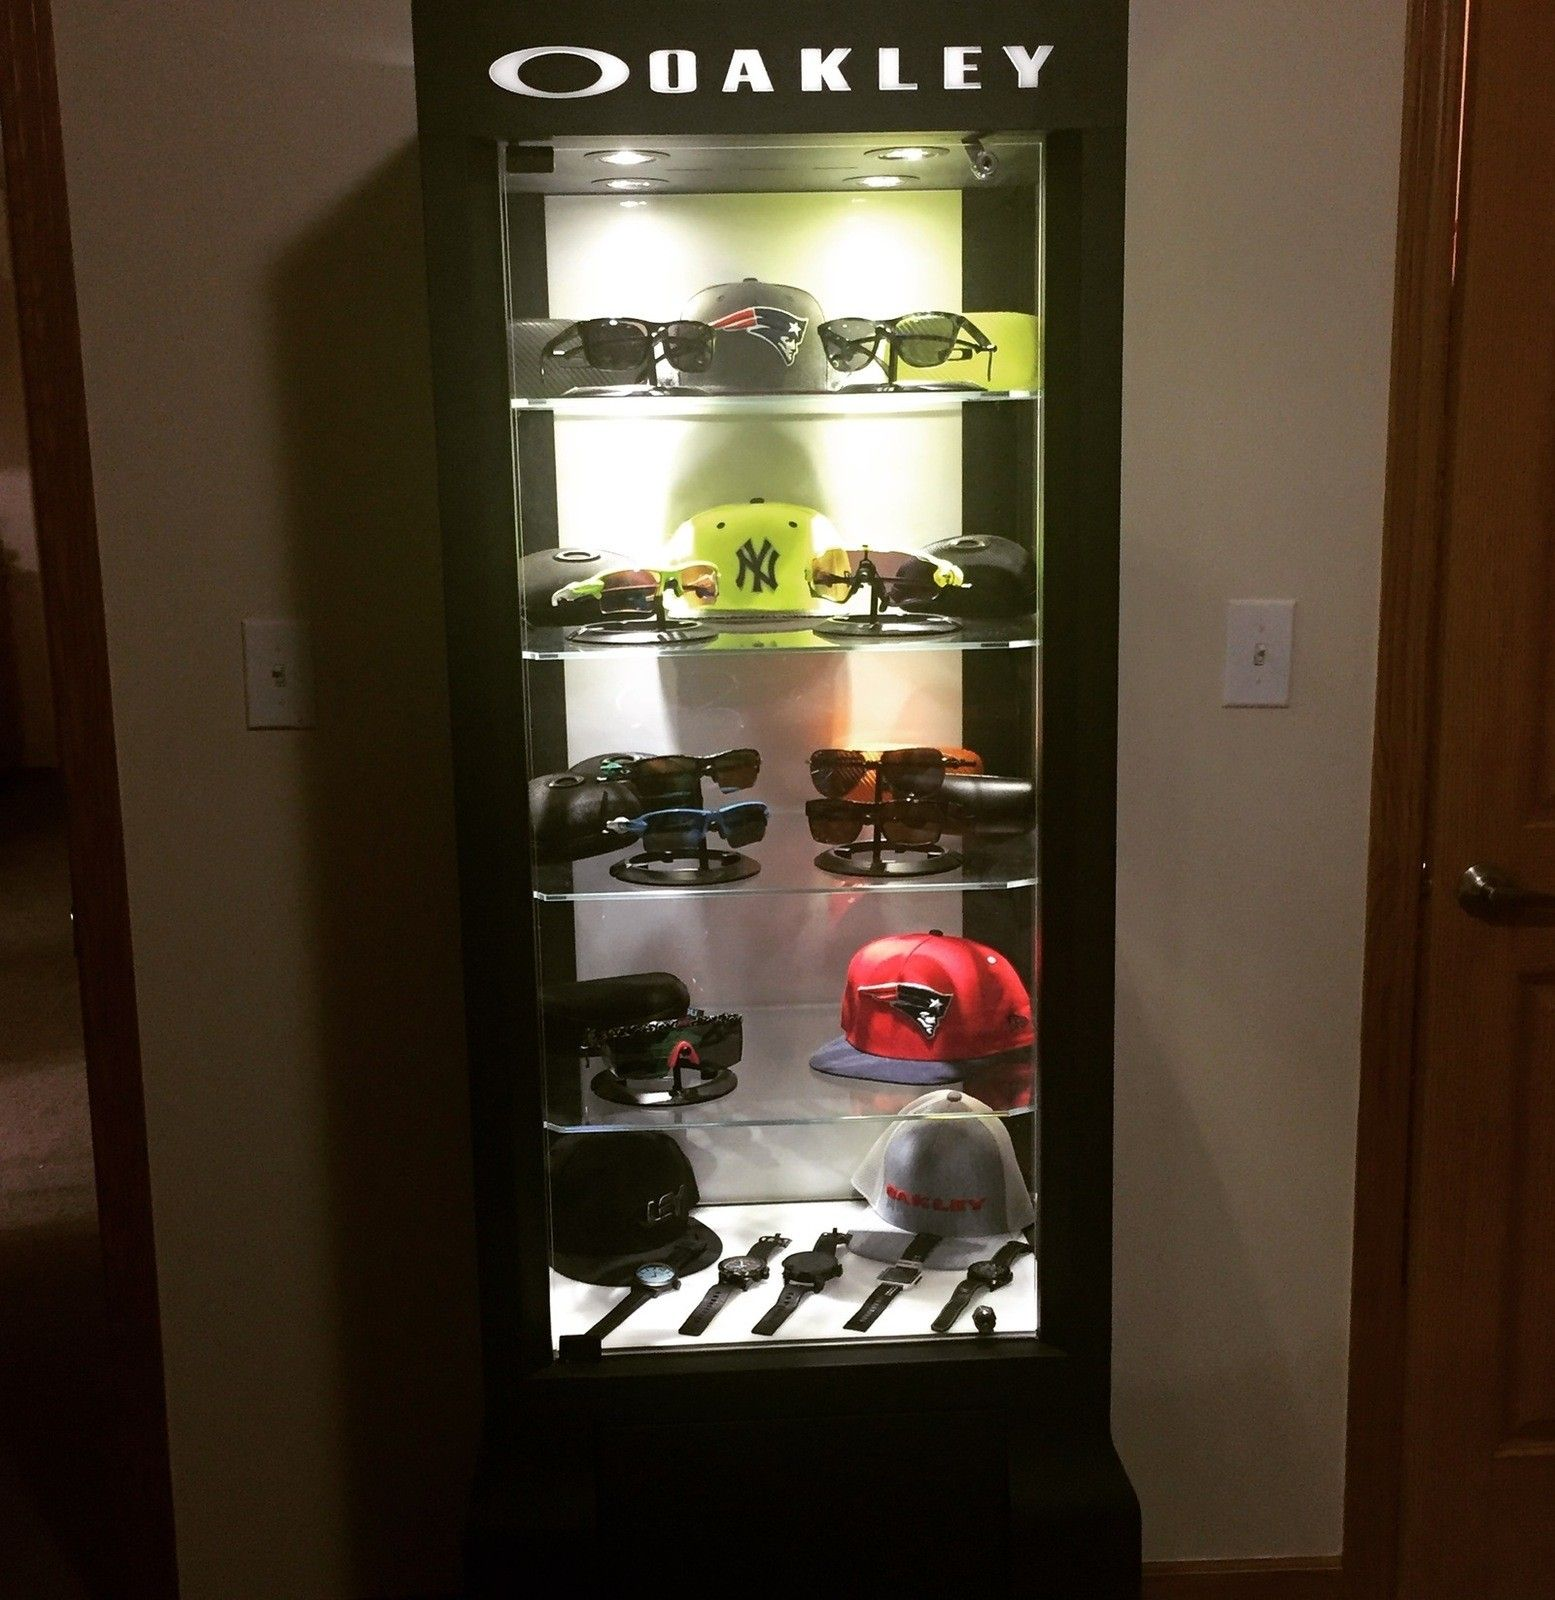 Just got a display case! - image.jpeg